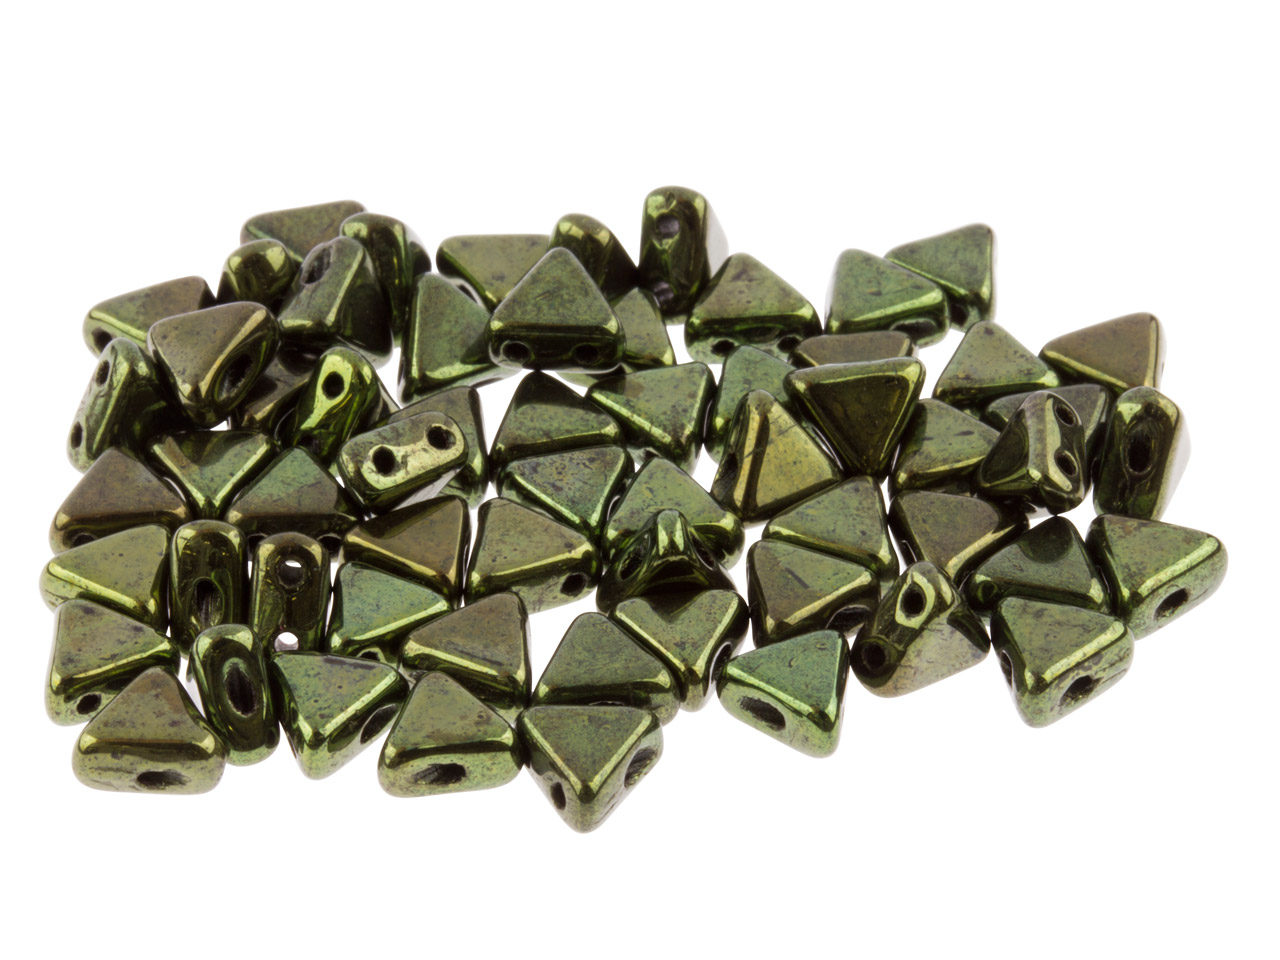 Kheops Puca 6mm Czech Beads,       Metallic Green, 9g Tube, Two-holed Beads